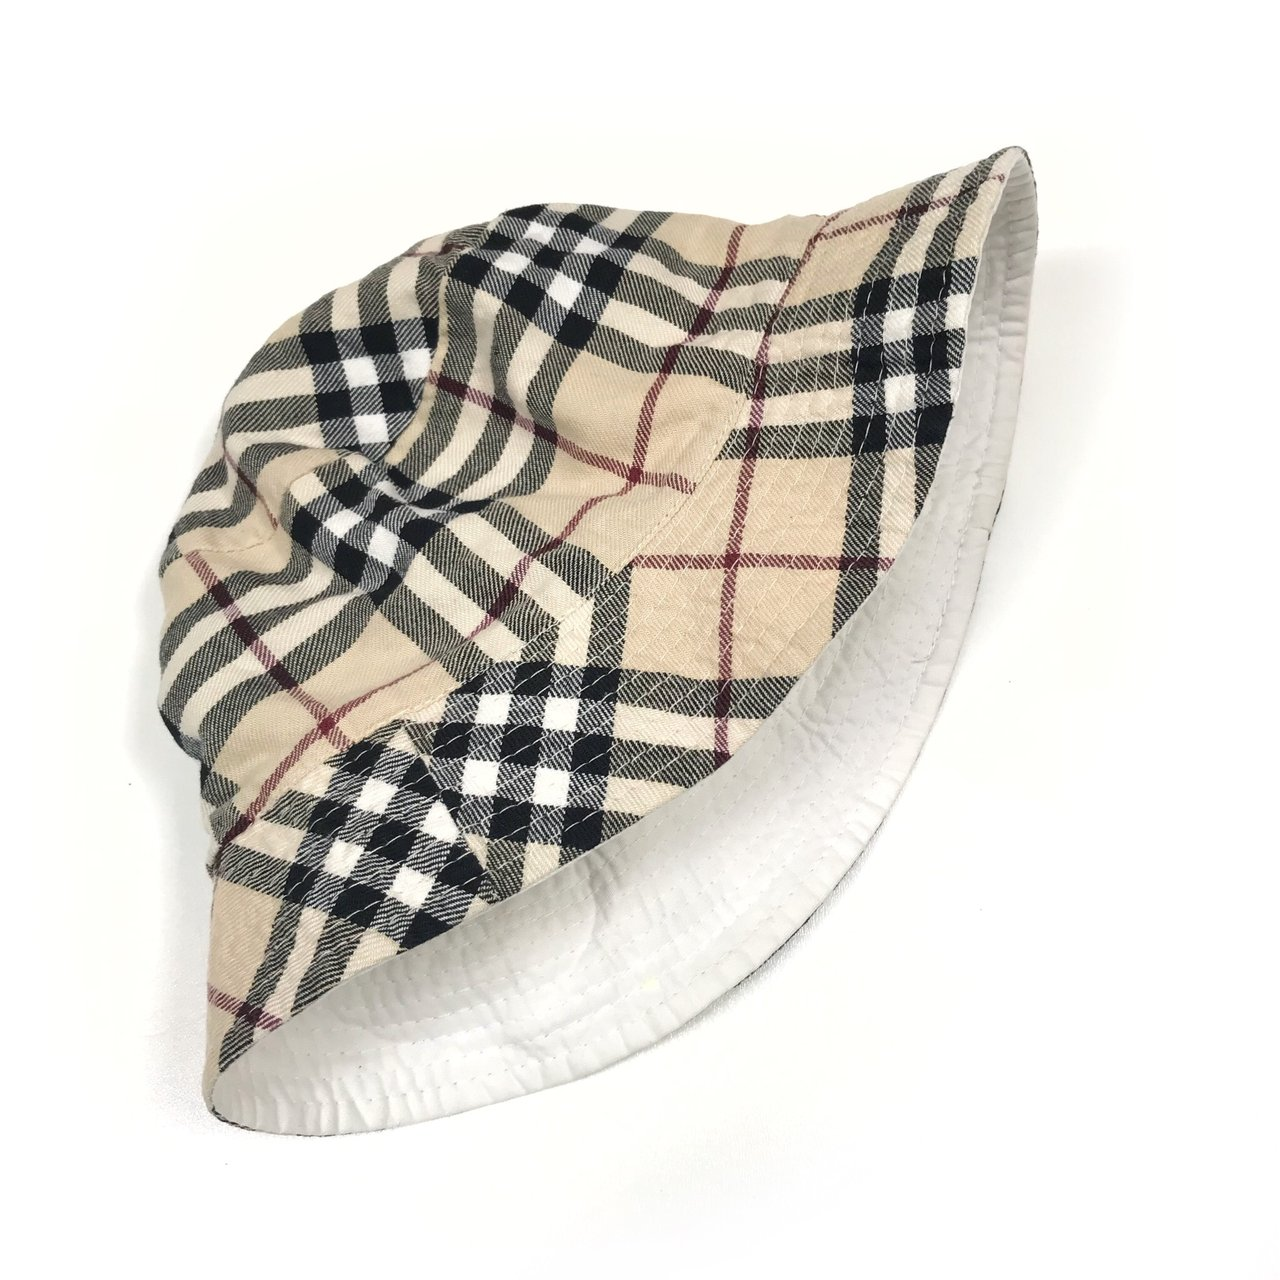 BURBERRY nova check bucket hat - men s medium size however - Depop acd7cb87cc3